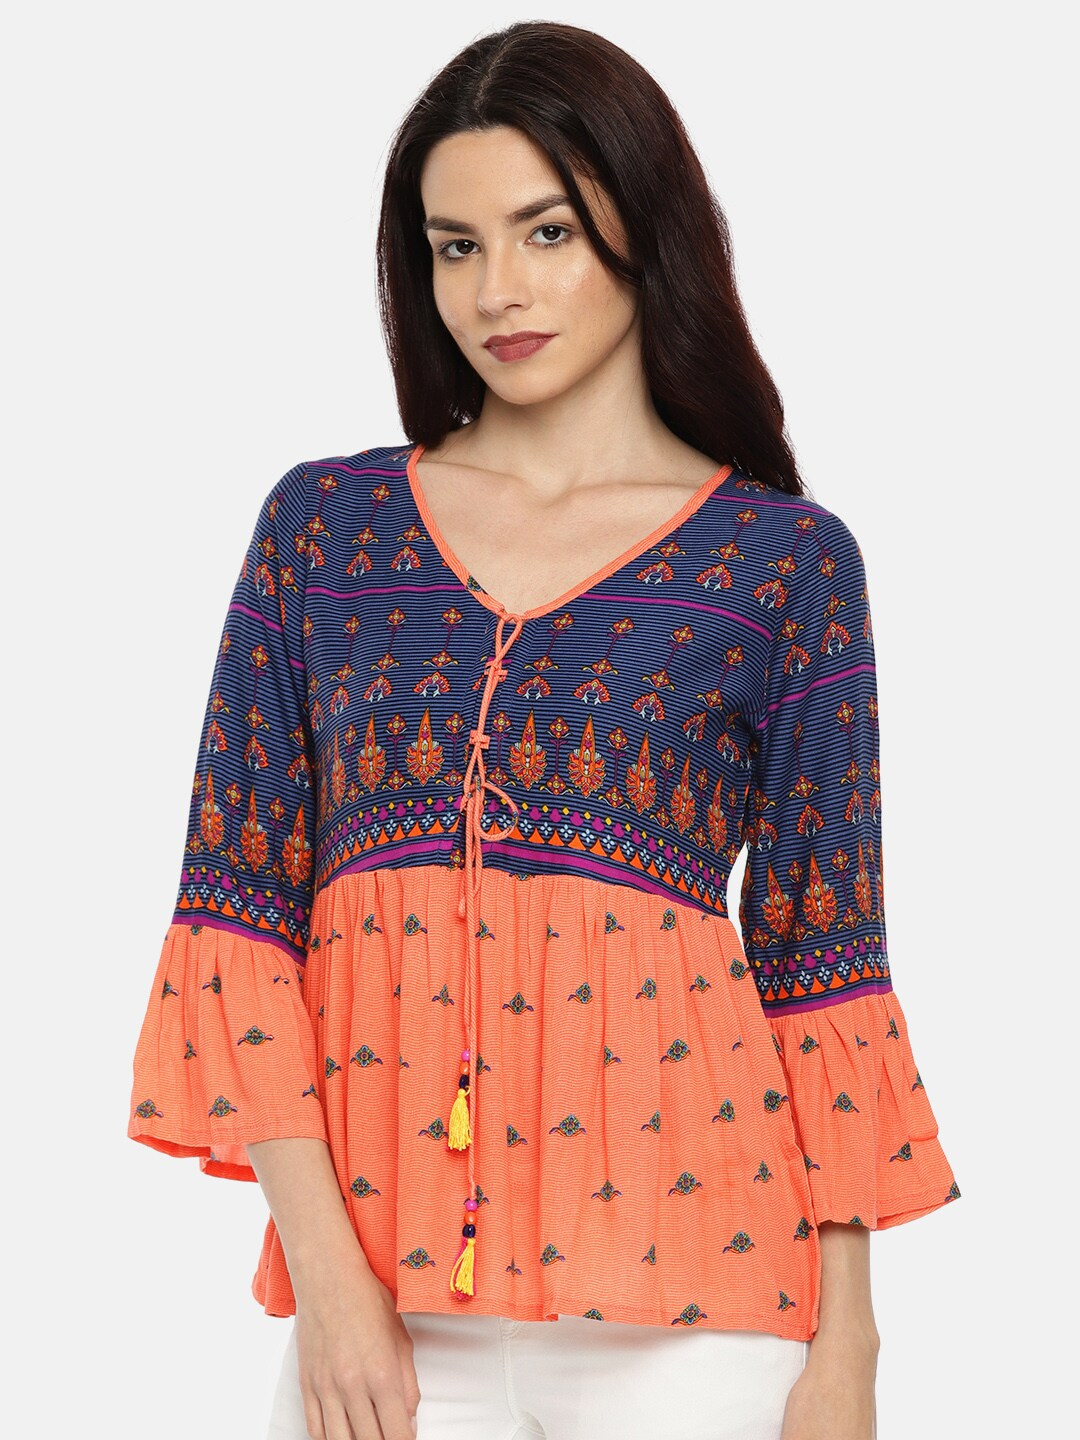 7c2cc95c17e22e Coral Tops - Buy Coral Tops online in India